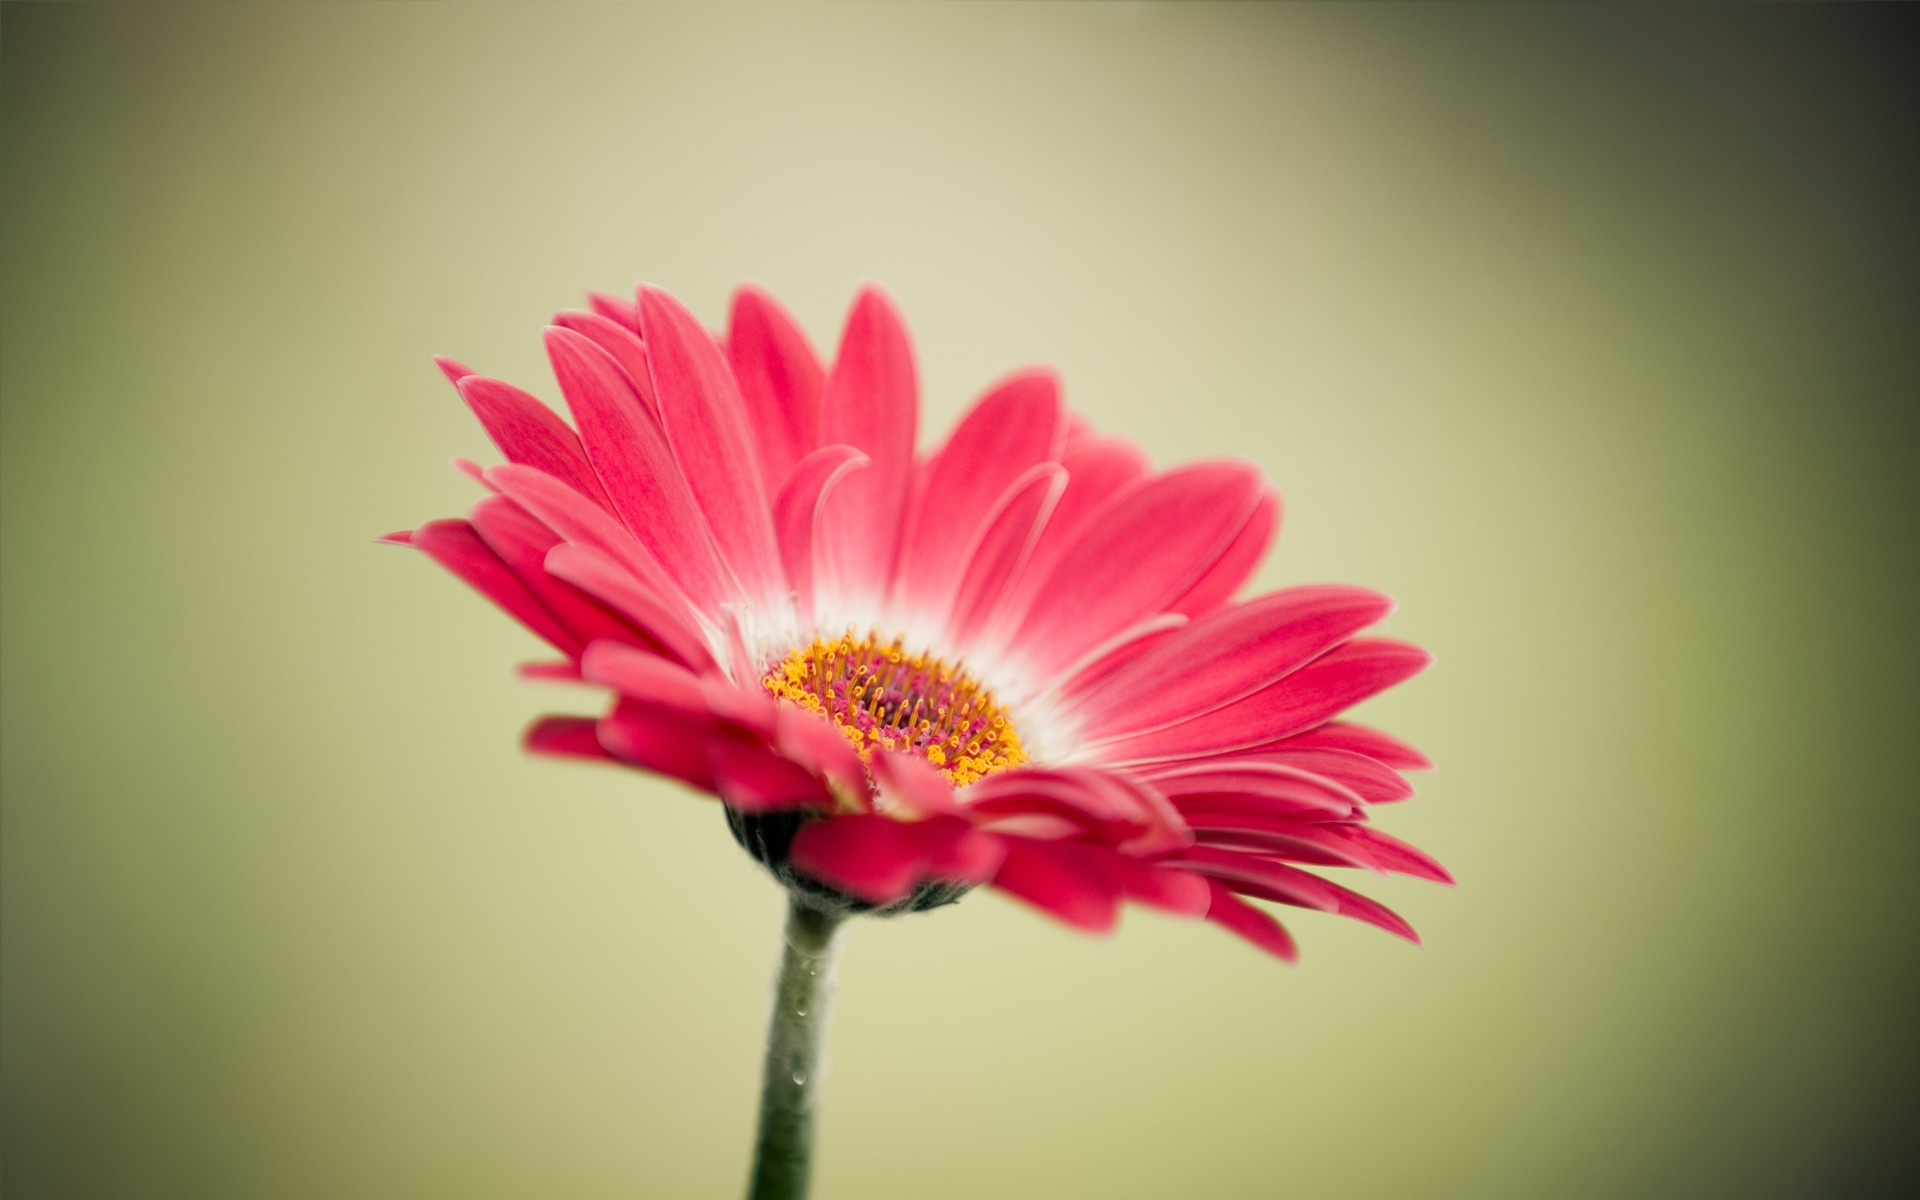 Wallpapers for Desktop with gerbera, wallpaper, 1920x1200, cartoon, media